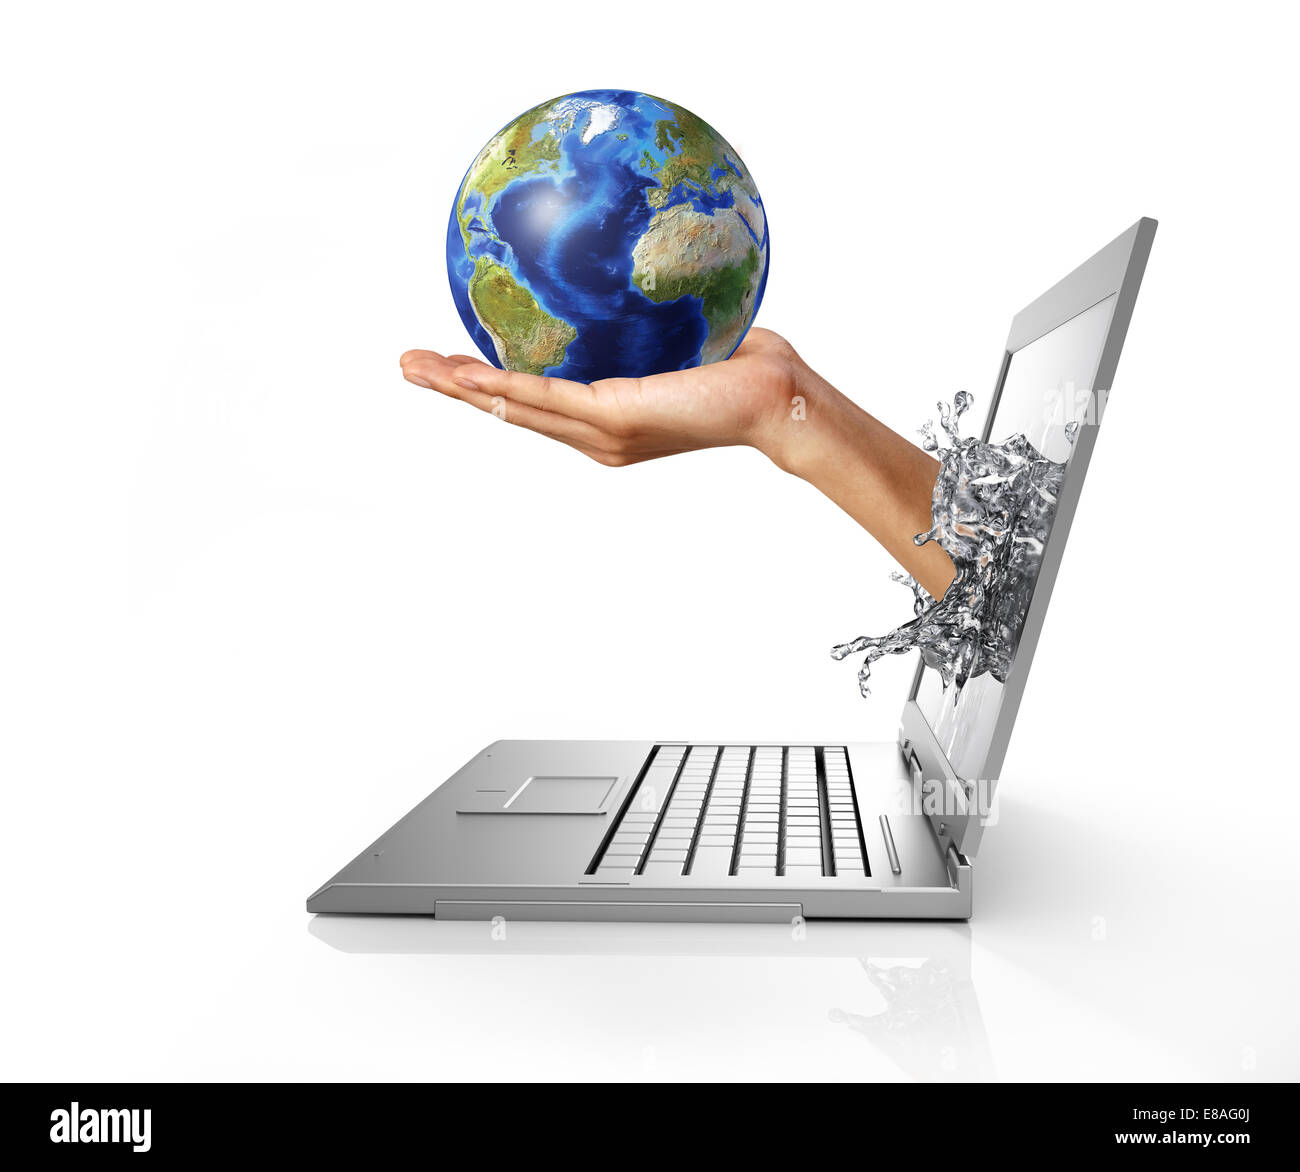 Earth globe on hand palm, coming out from a laptop computer, forming a liquid splash on the screen. Isolated on - Stock Image